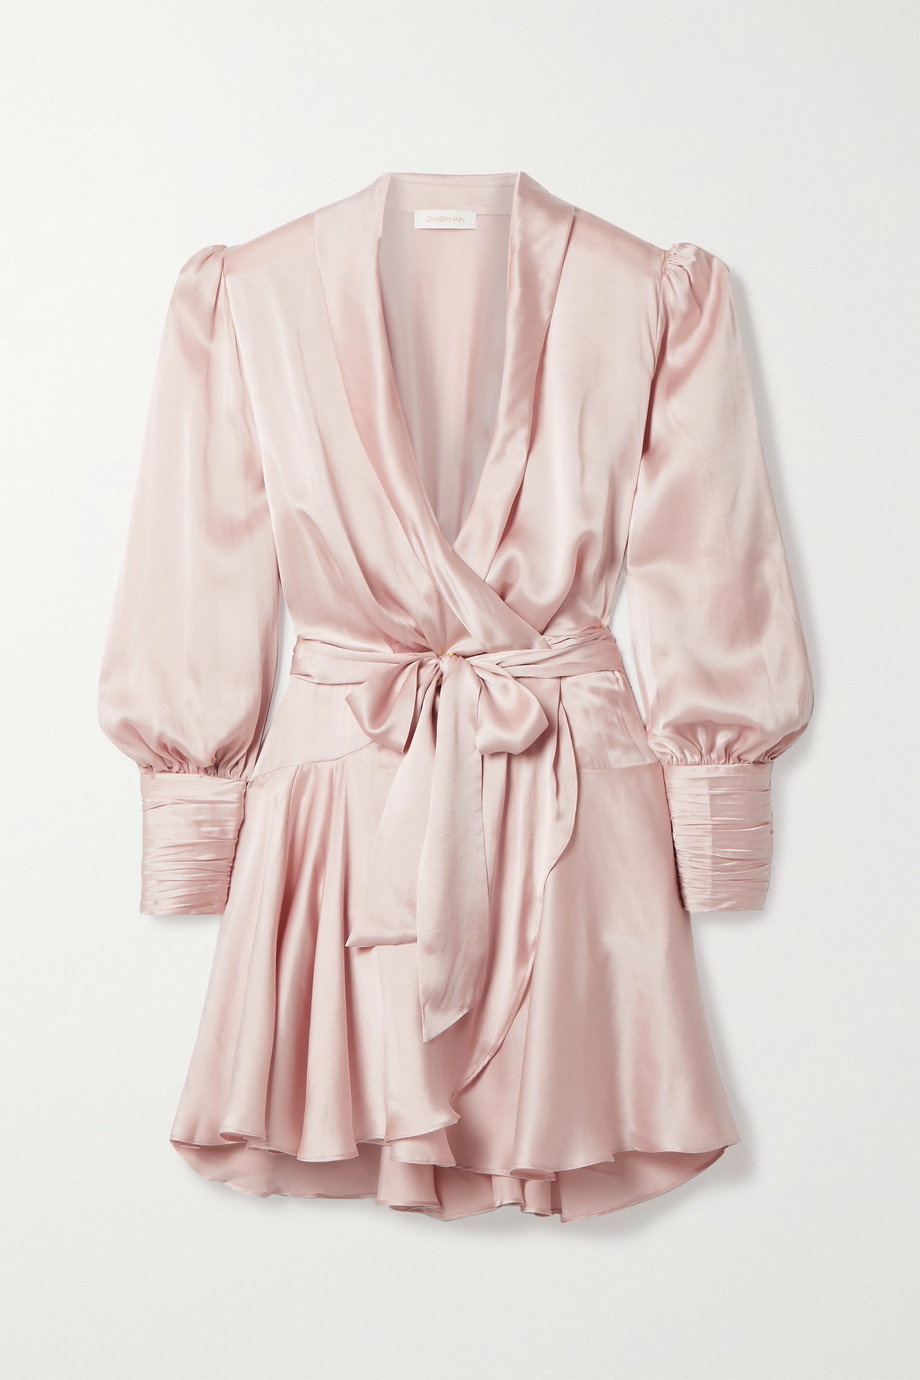 Zimmermann Mini-robe portefeuille en satin de soie